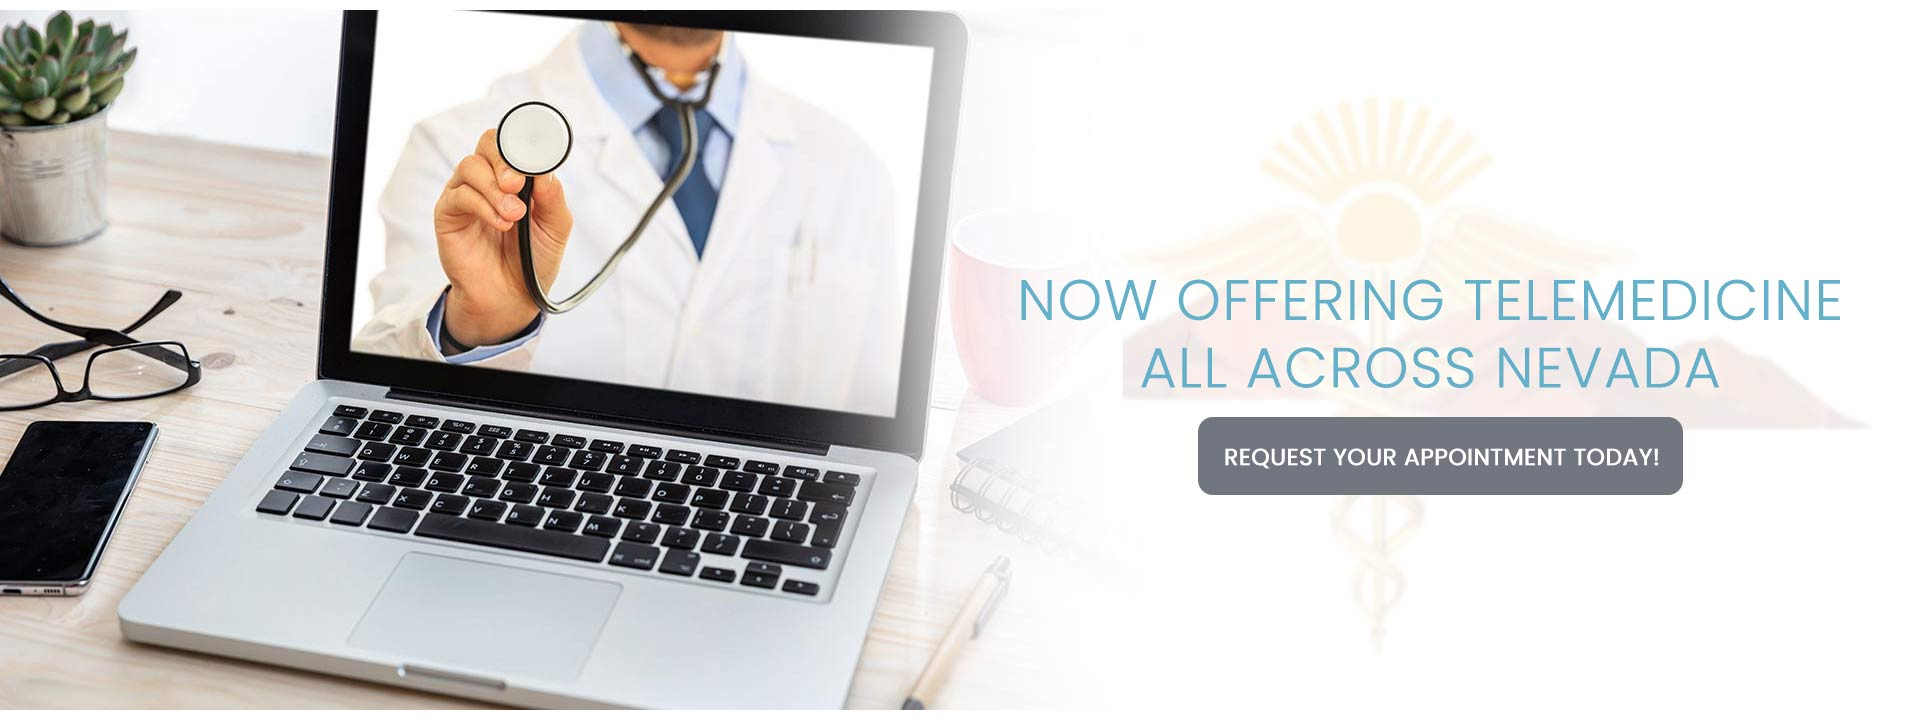 Now Offering Telemedicine All Across Nevada - Request Your Appointment Today!